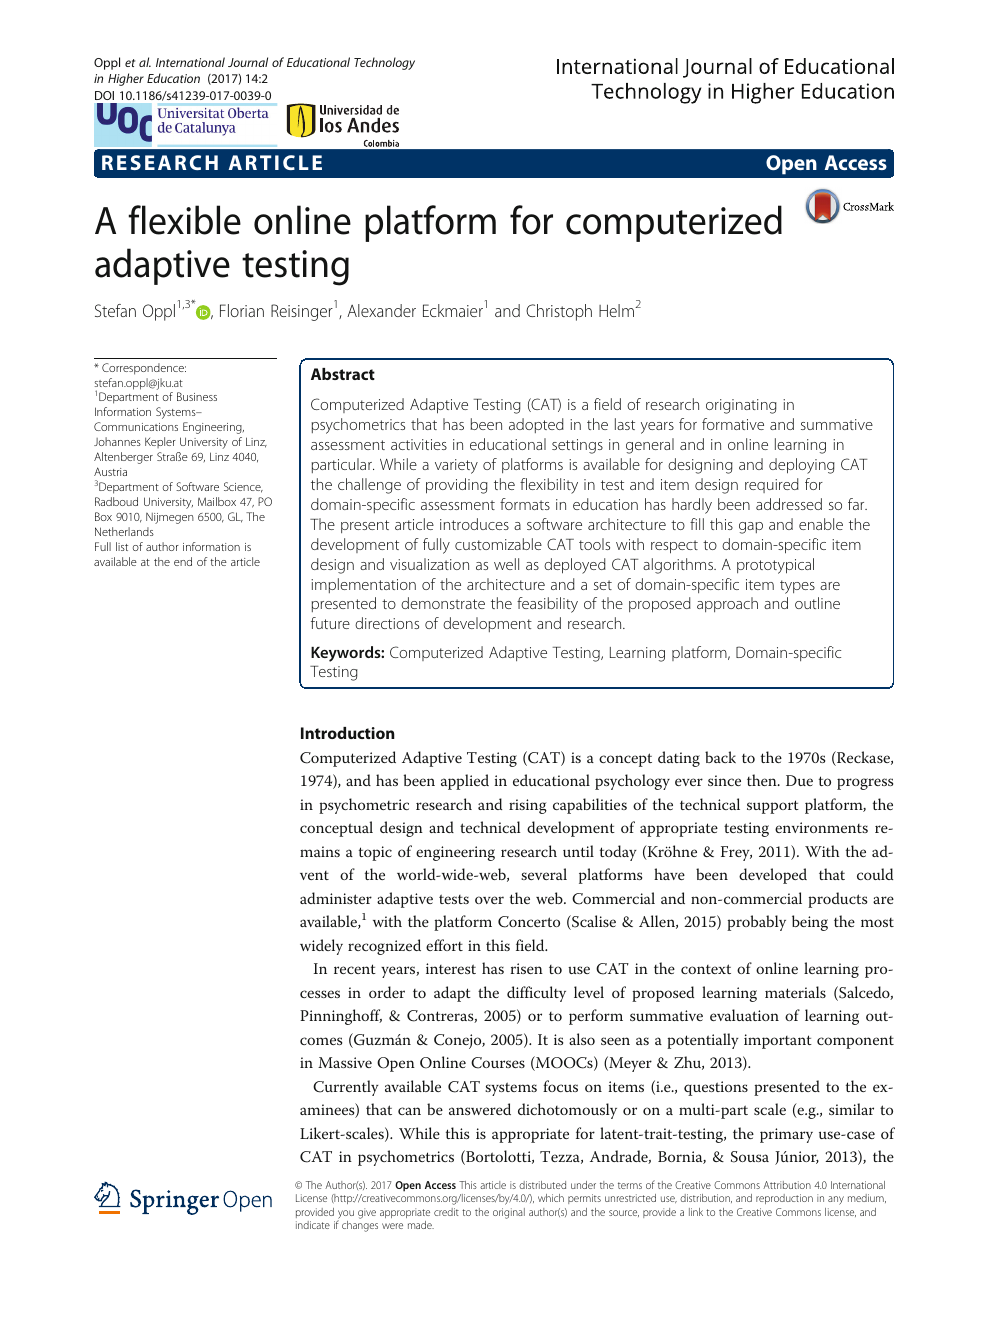 A flexible online platform for computerized adaptive testing